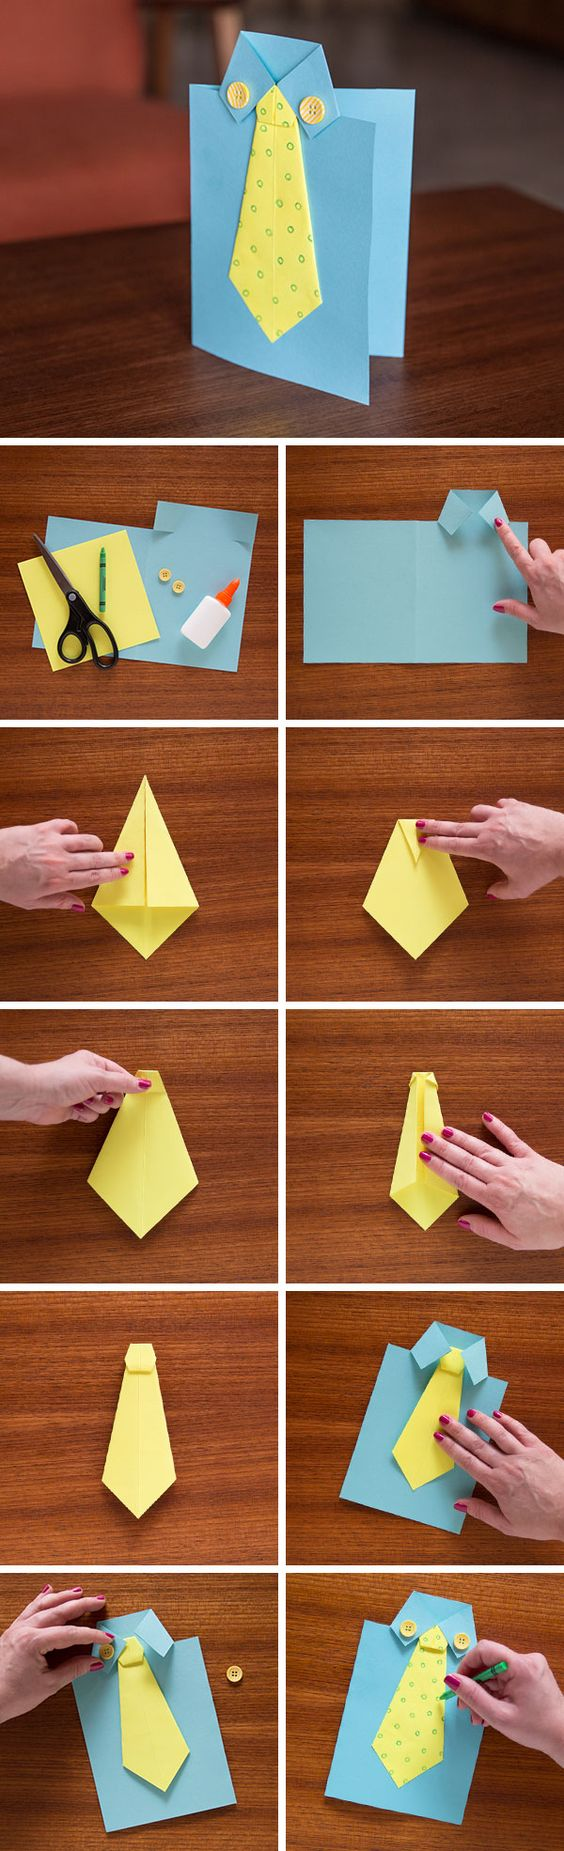 Origami Shirt Tie Card Be Creative With This Styled Thats Fun And Interactive Customize The Colors Designs